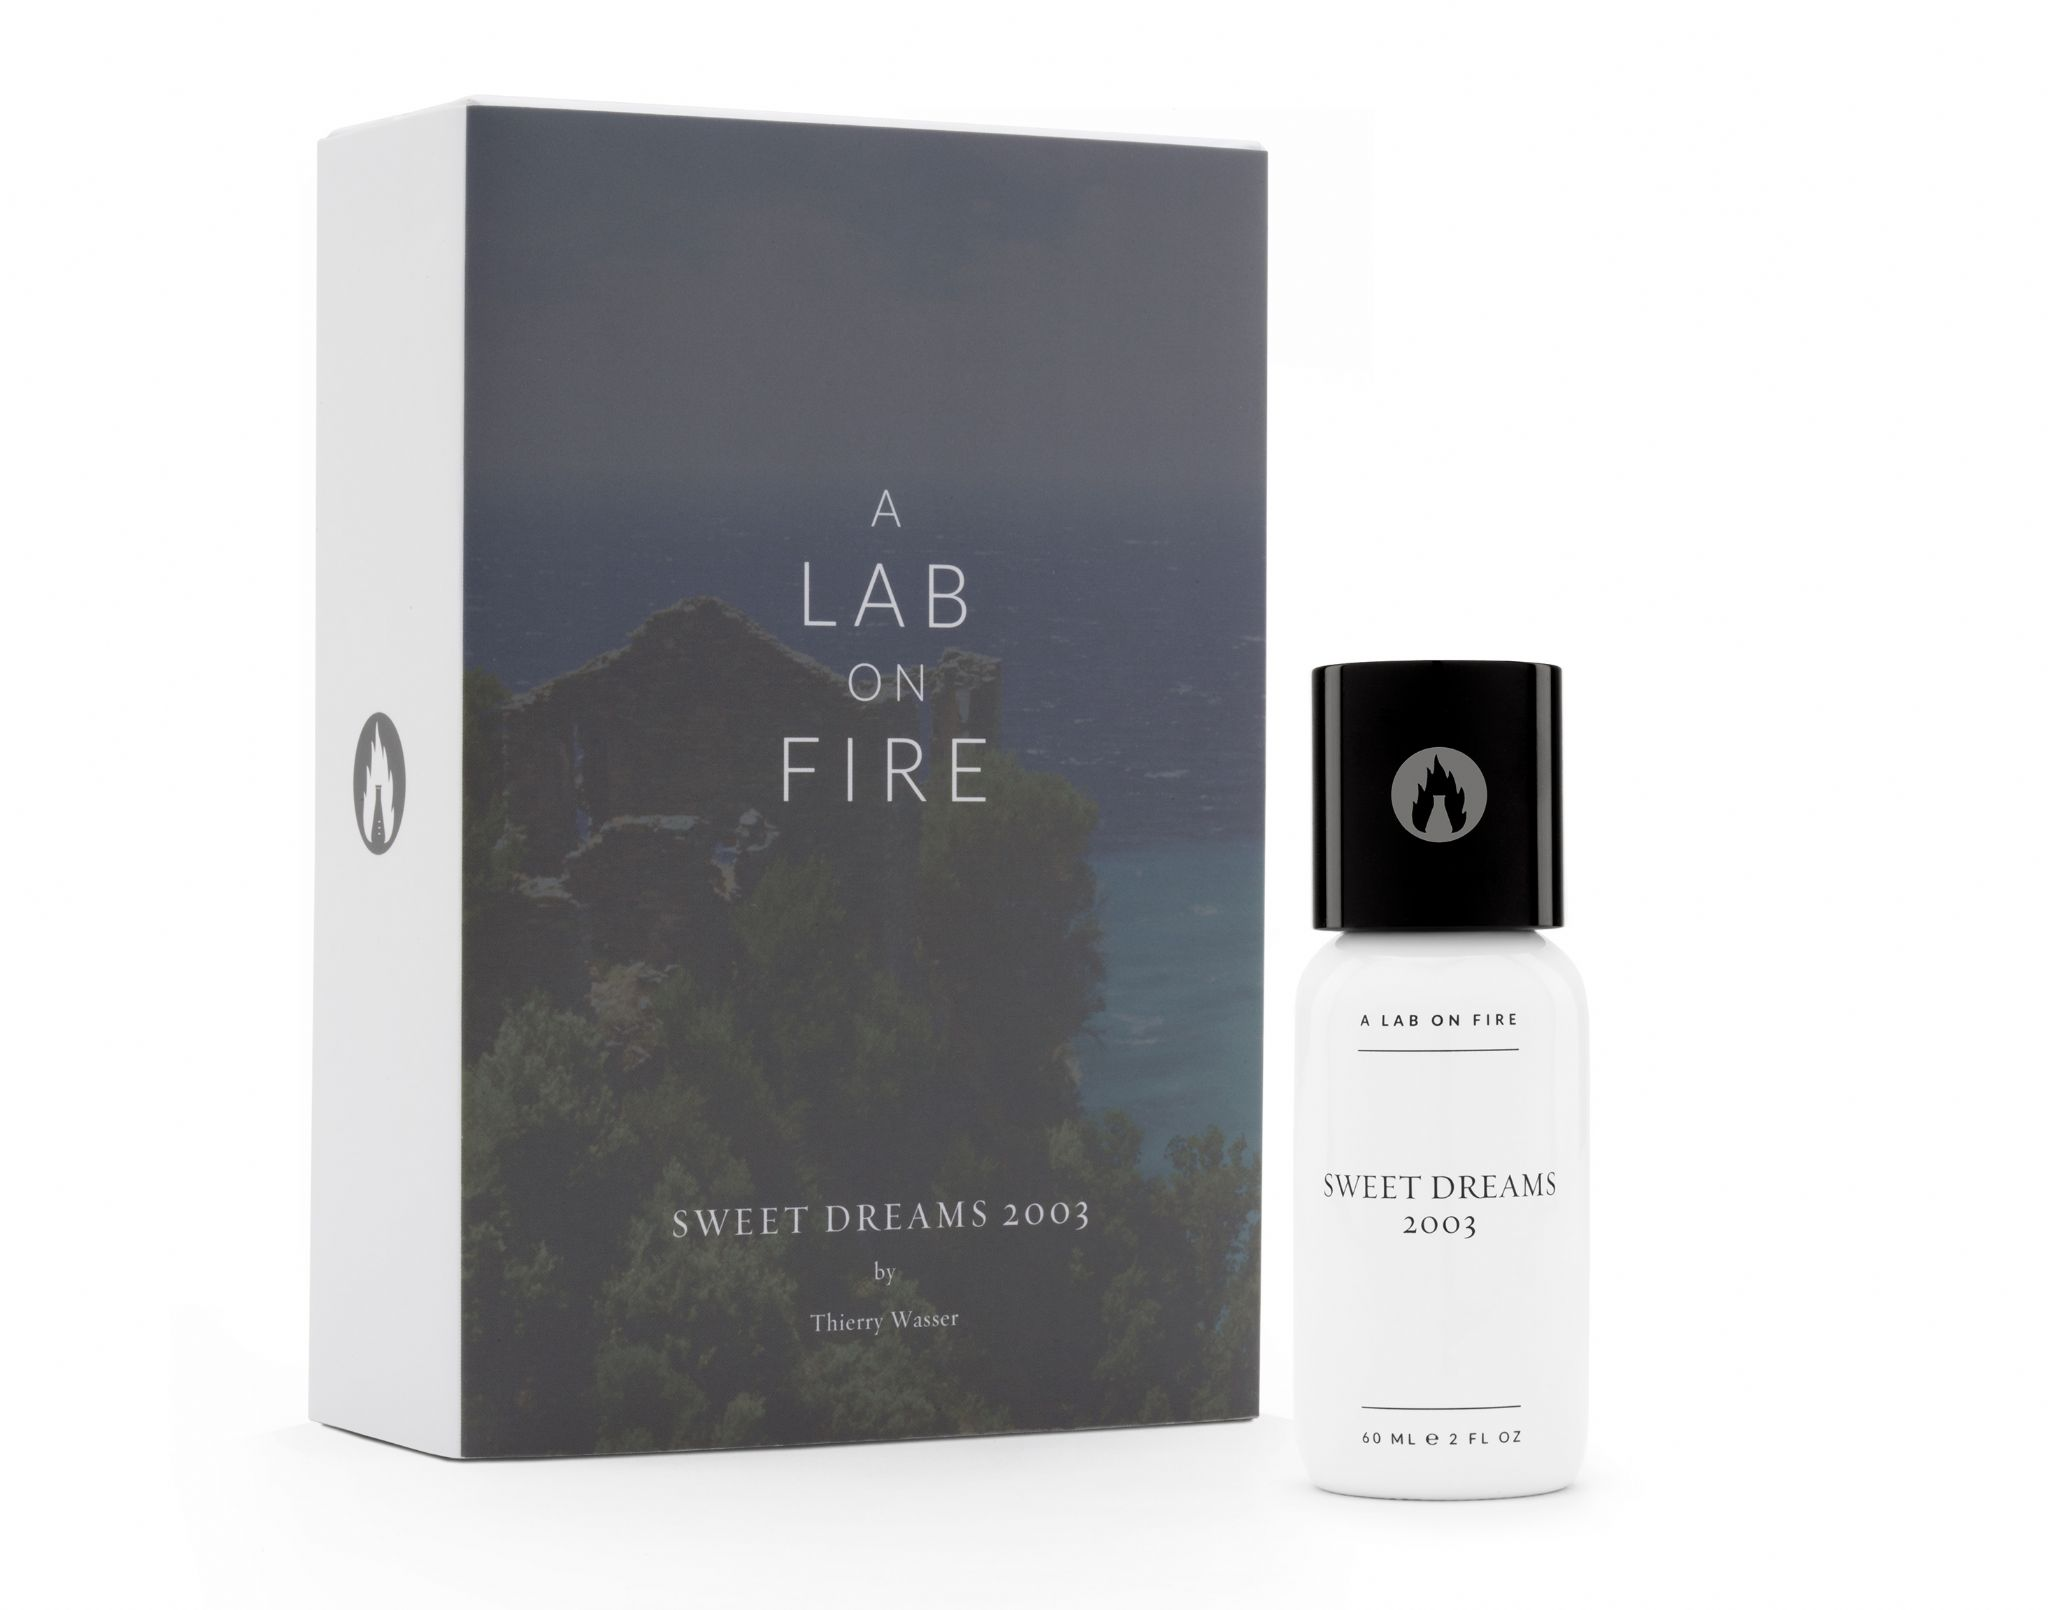 a-lab-on-fire-sweet-dreams-2003-edc-60ml-size-sample-[2]-12188-p